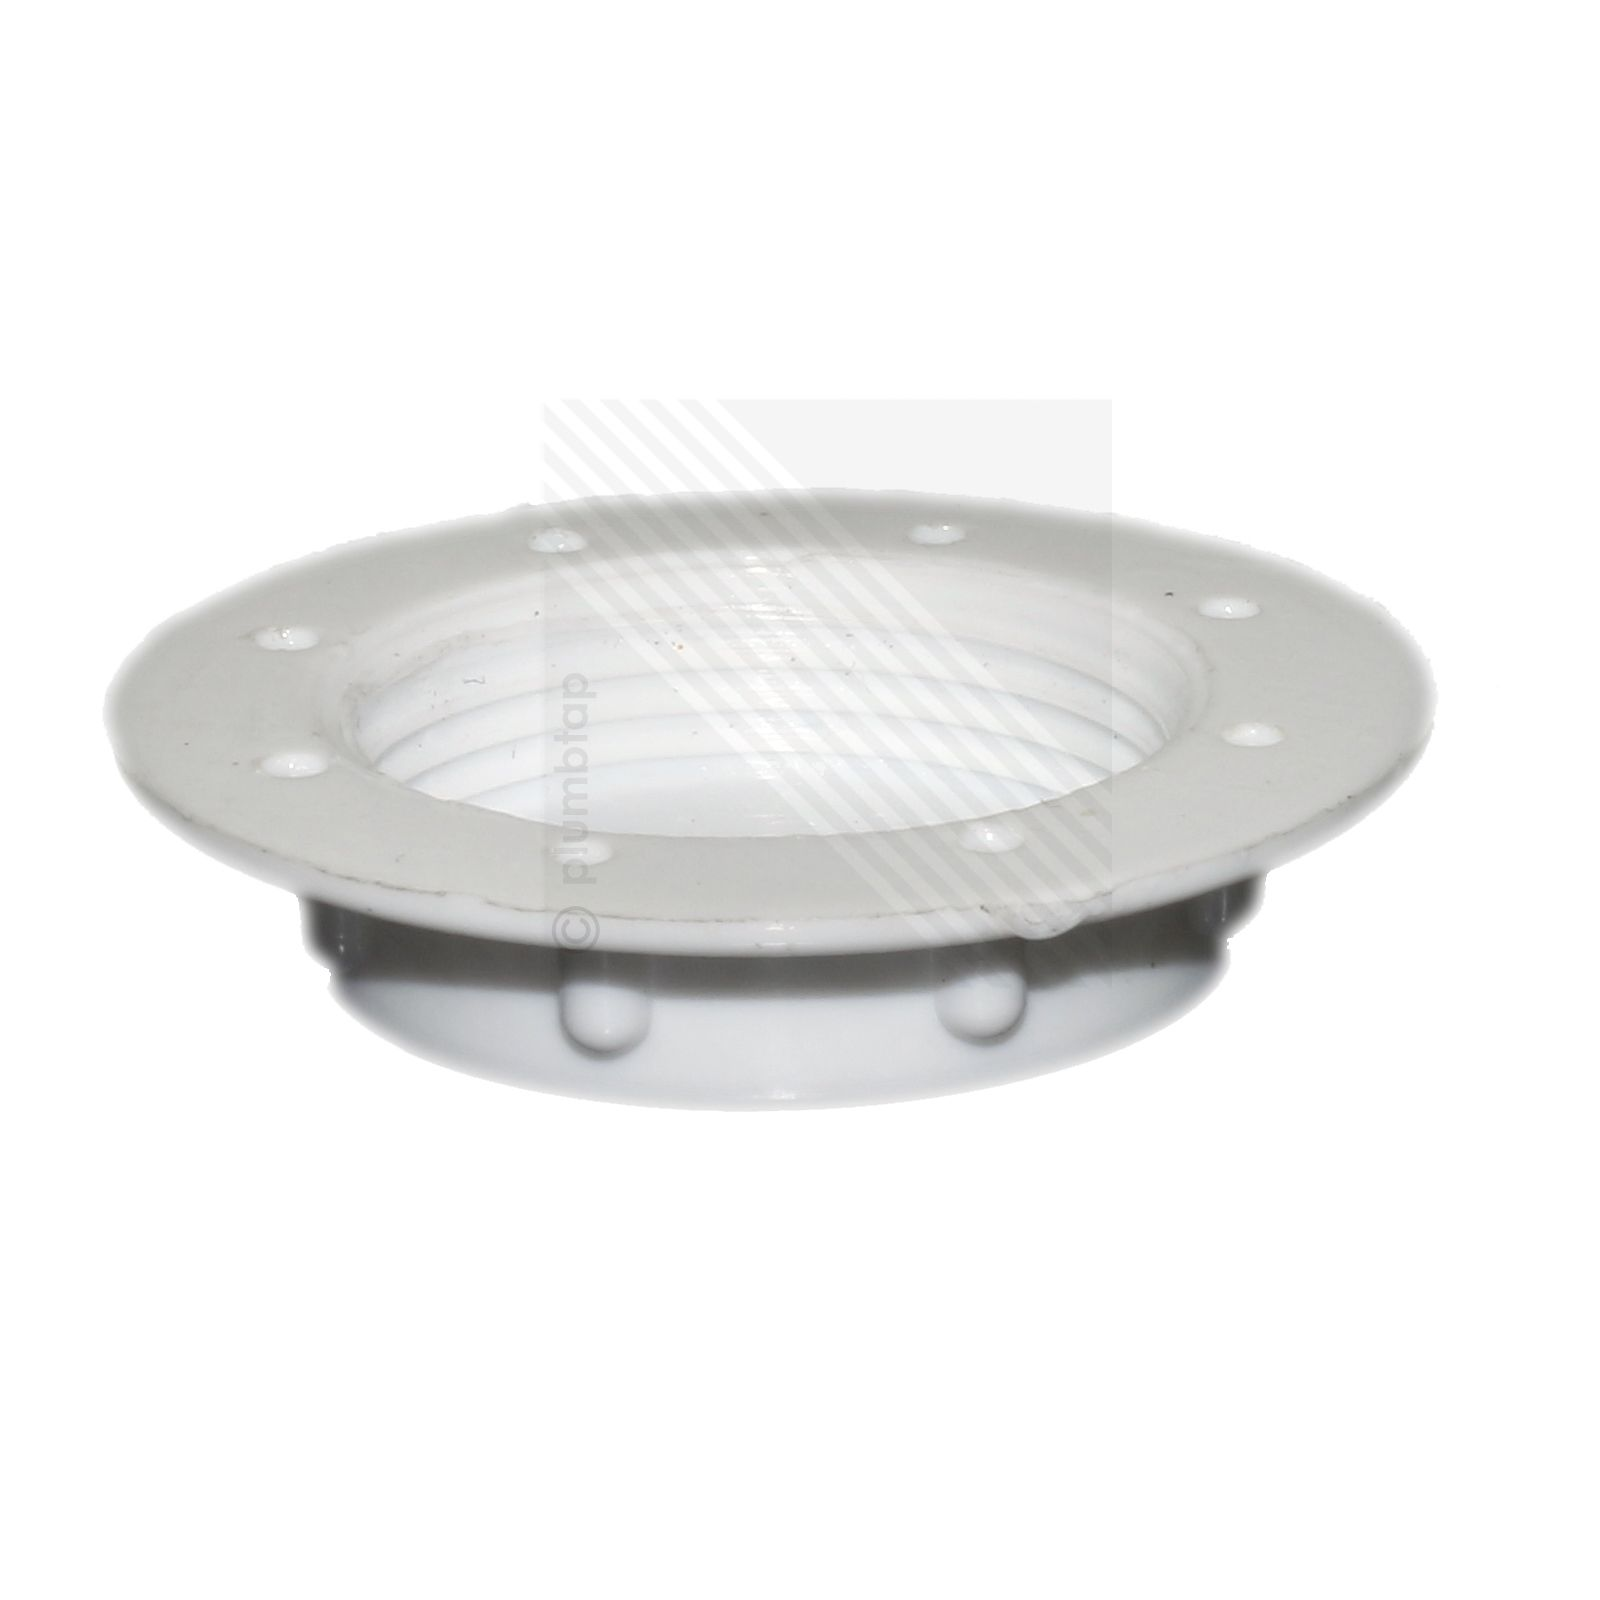 Kitchen Sink Tap Hole Blanking Plug Screw on Round Disk Cover Plate ...